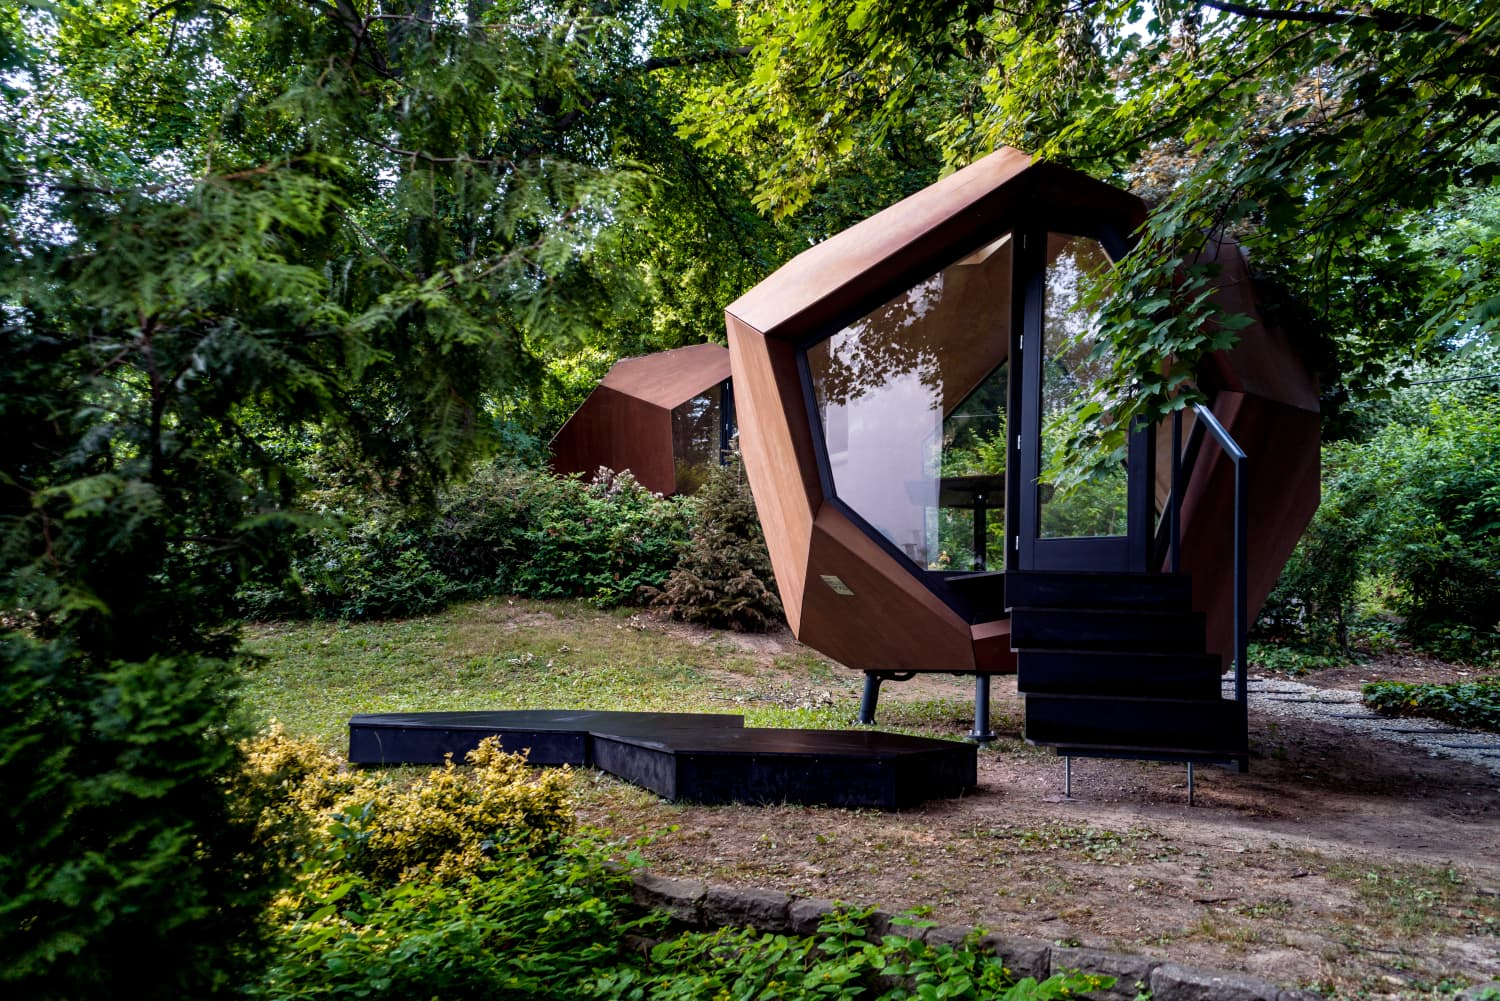 This 86-Square-Foot Geometric Cabin Is What Work-From-Home Dreams Are Made Of